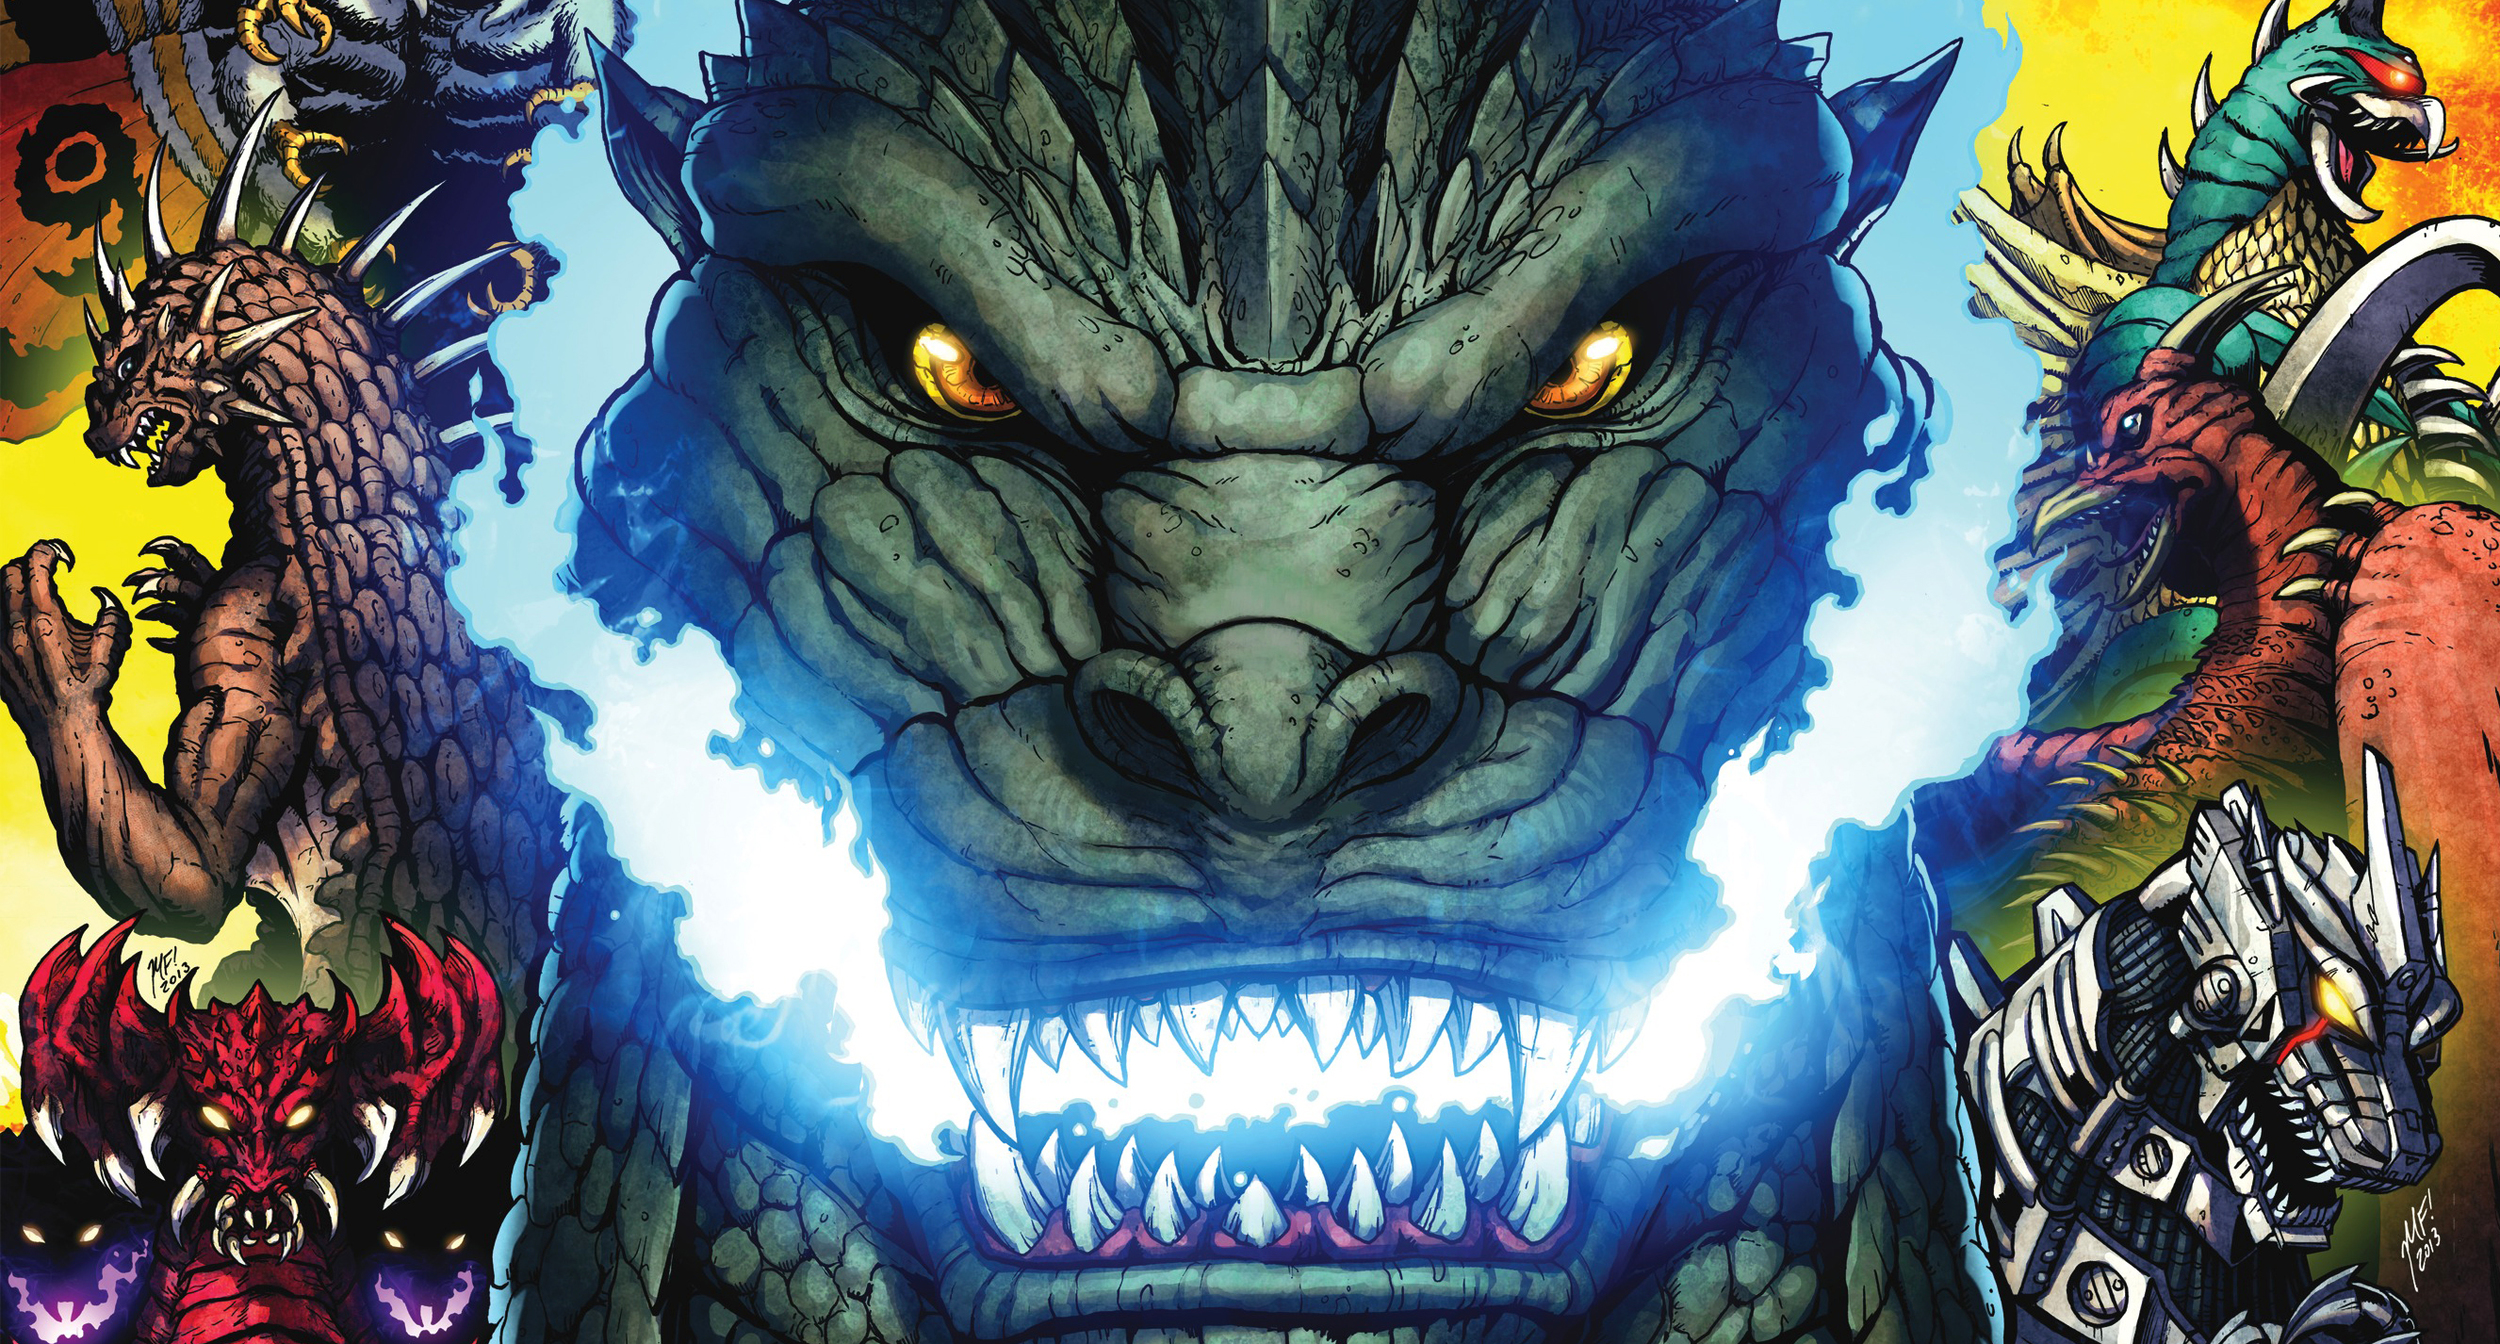 Cover detail from Godzilla: Rulers of the Earth #1, art by Matt Frank. IDW Publishing.